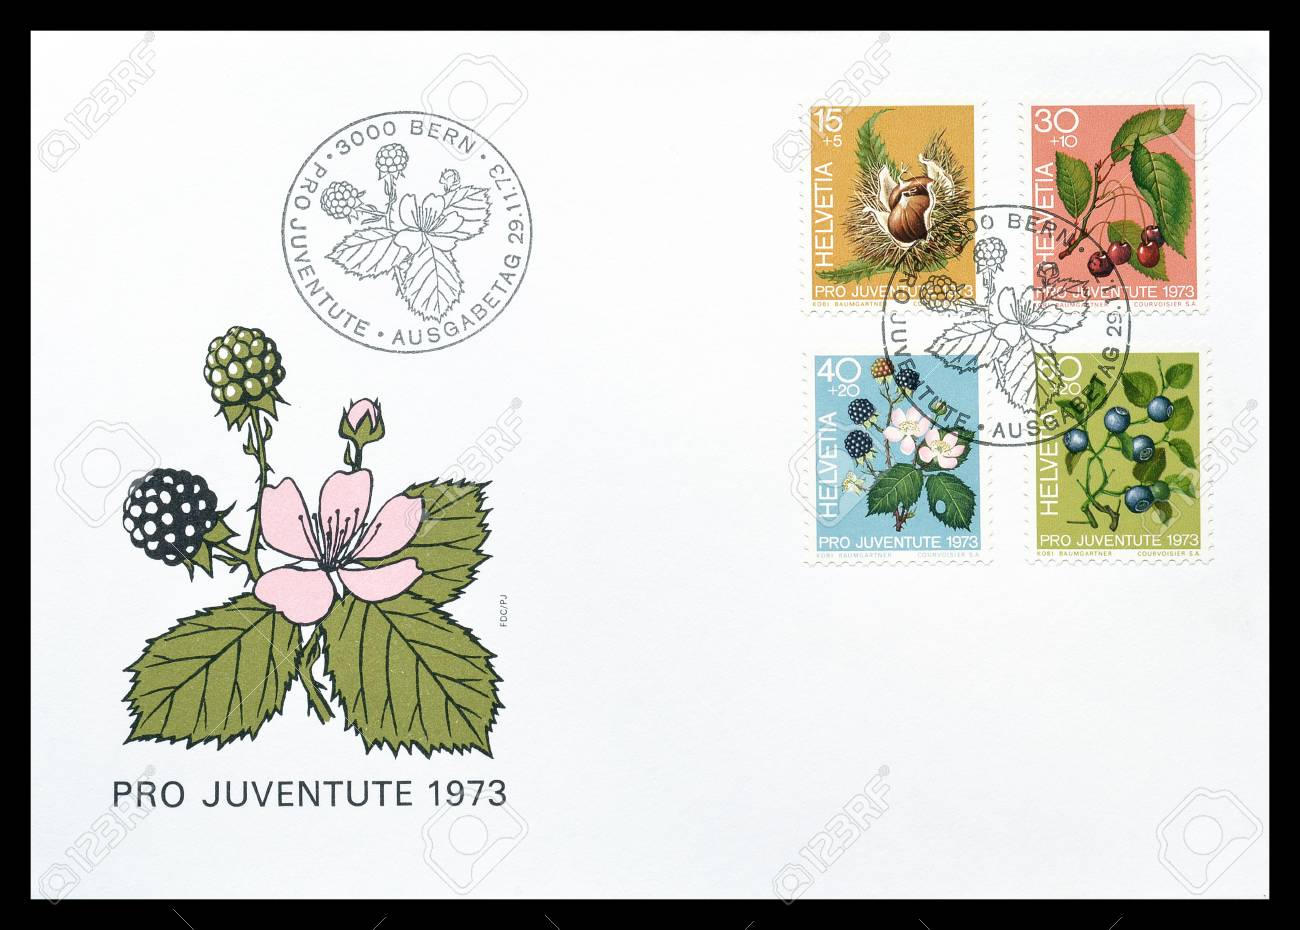 First day cover letter printed by switzerland that shows fruits first day cover letter printed by switzerland that shows fruits of the forest circa thecheapjerseys Image collections